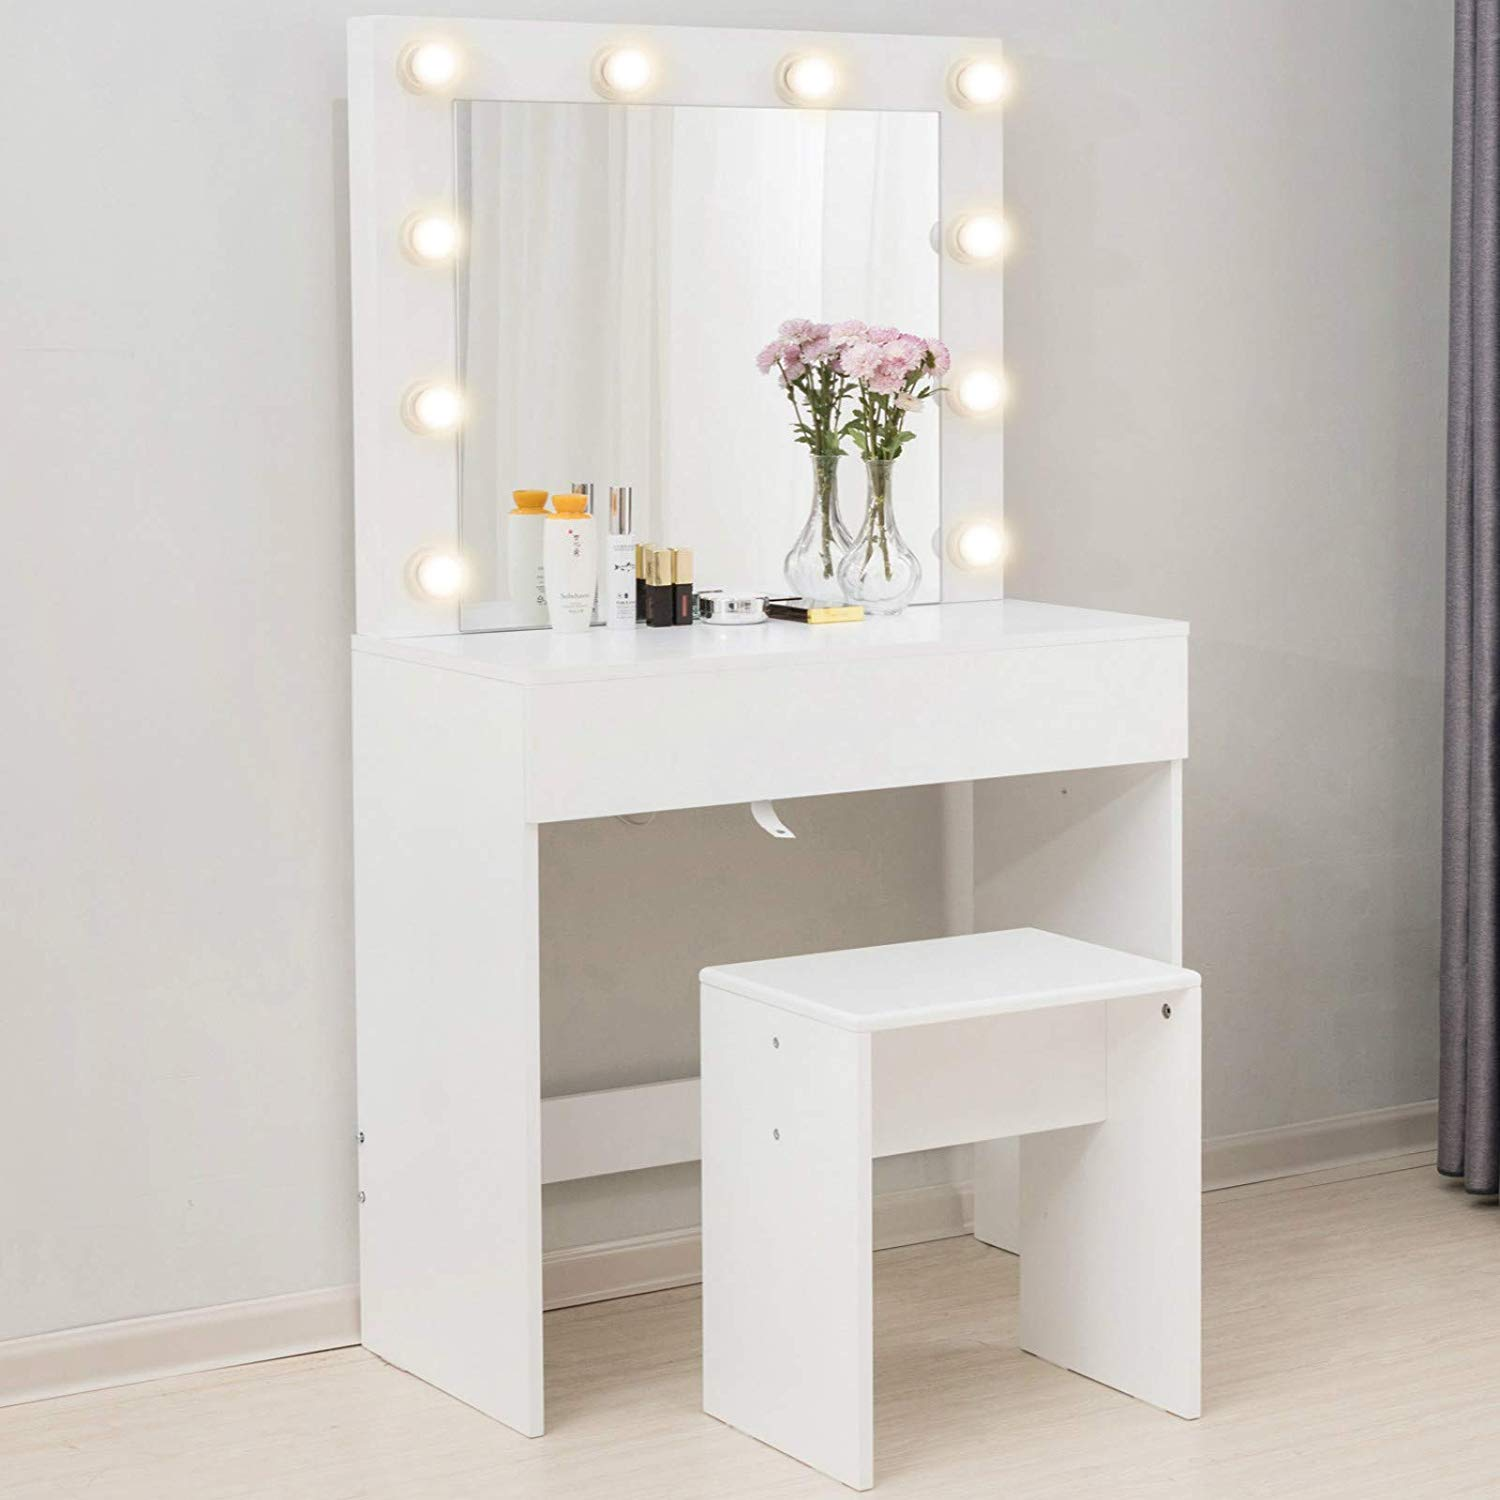 Makeup Vanity Table w/10 LED Lights Mirror,Vanity Set with Stool&Drawer,Wood Dressing Table Bedroom Furniture Girls Women Gifts White